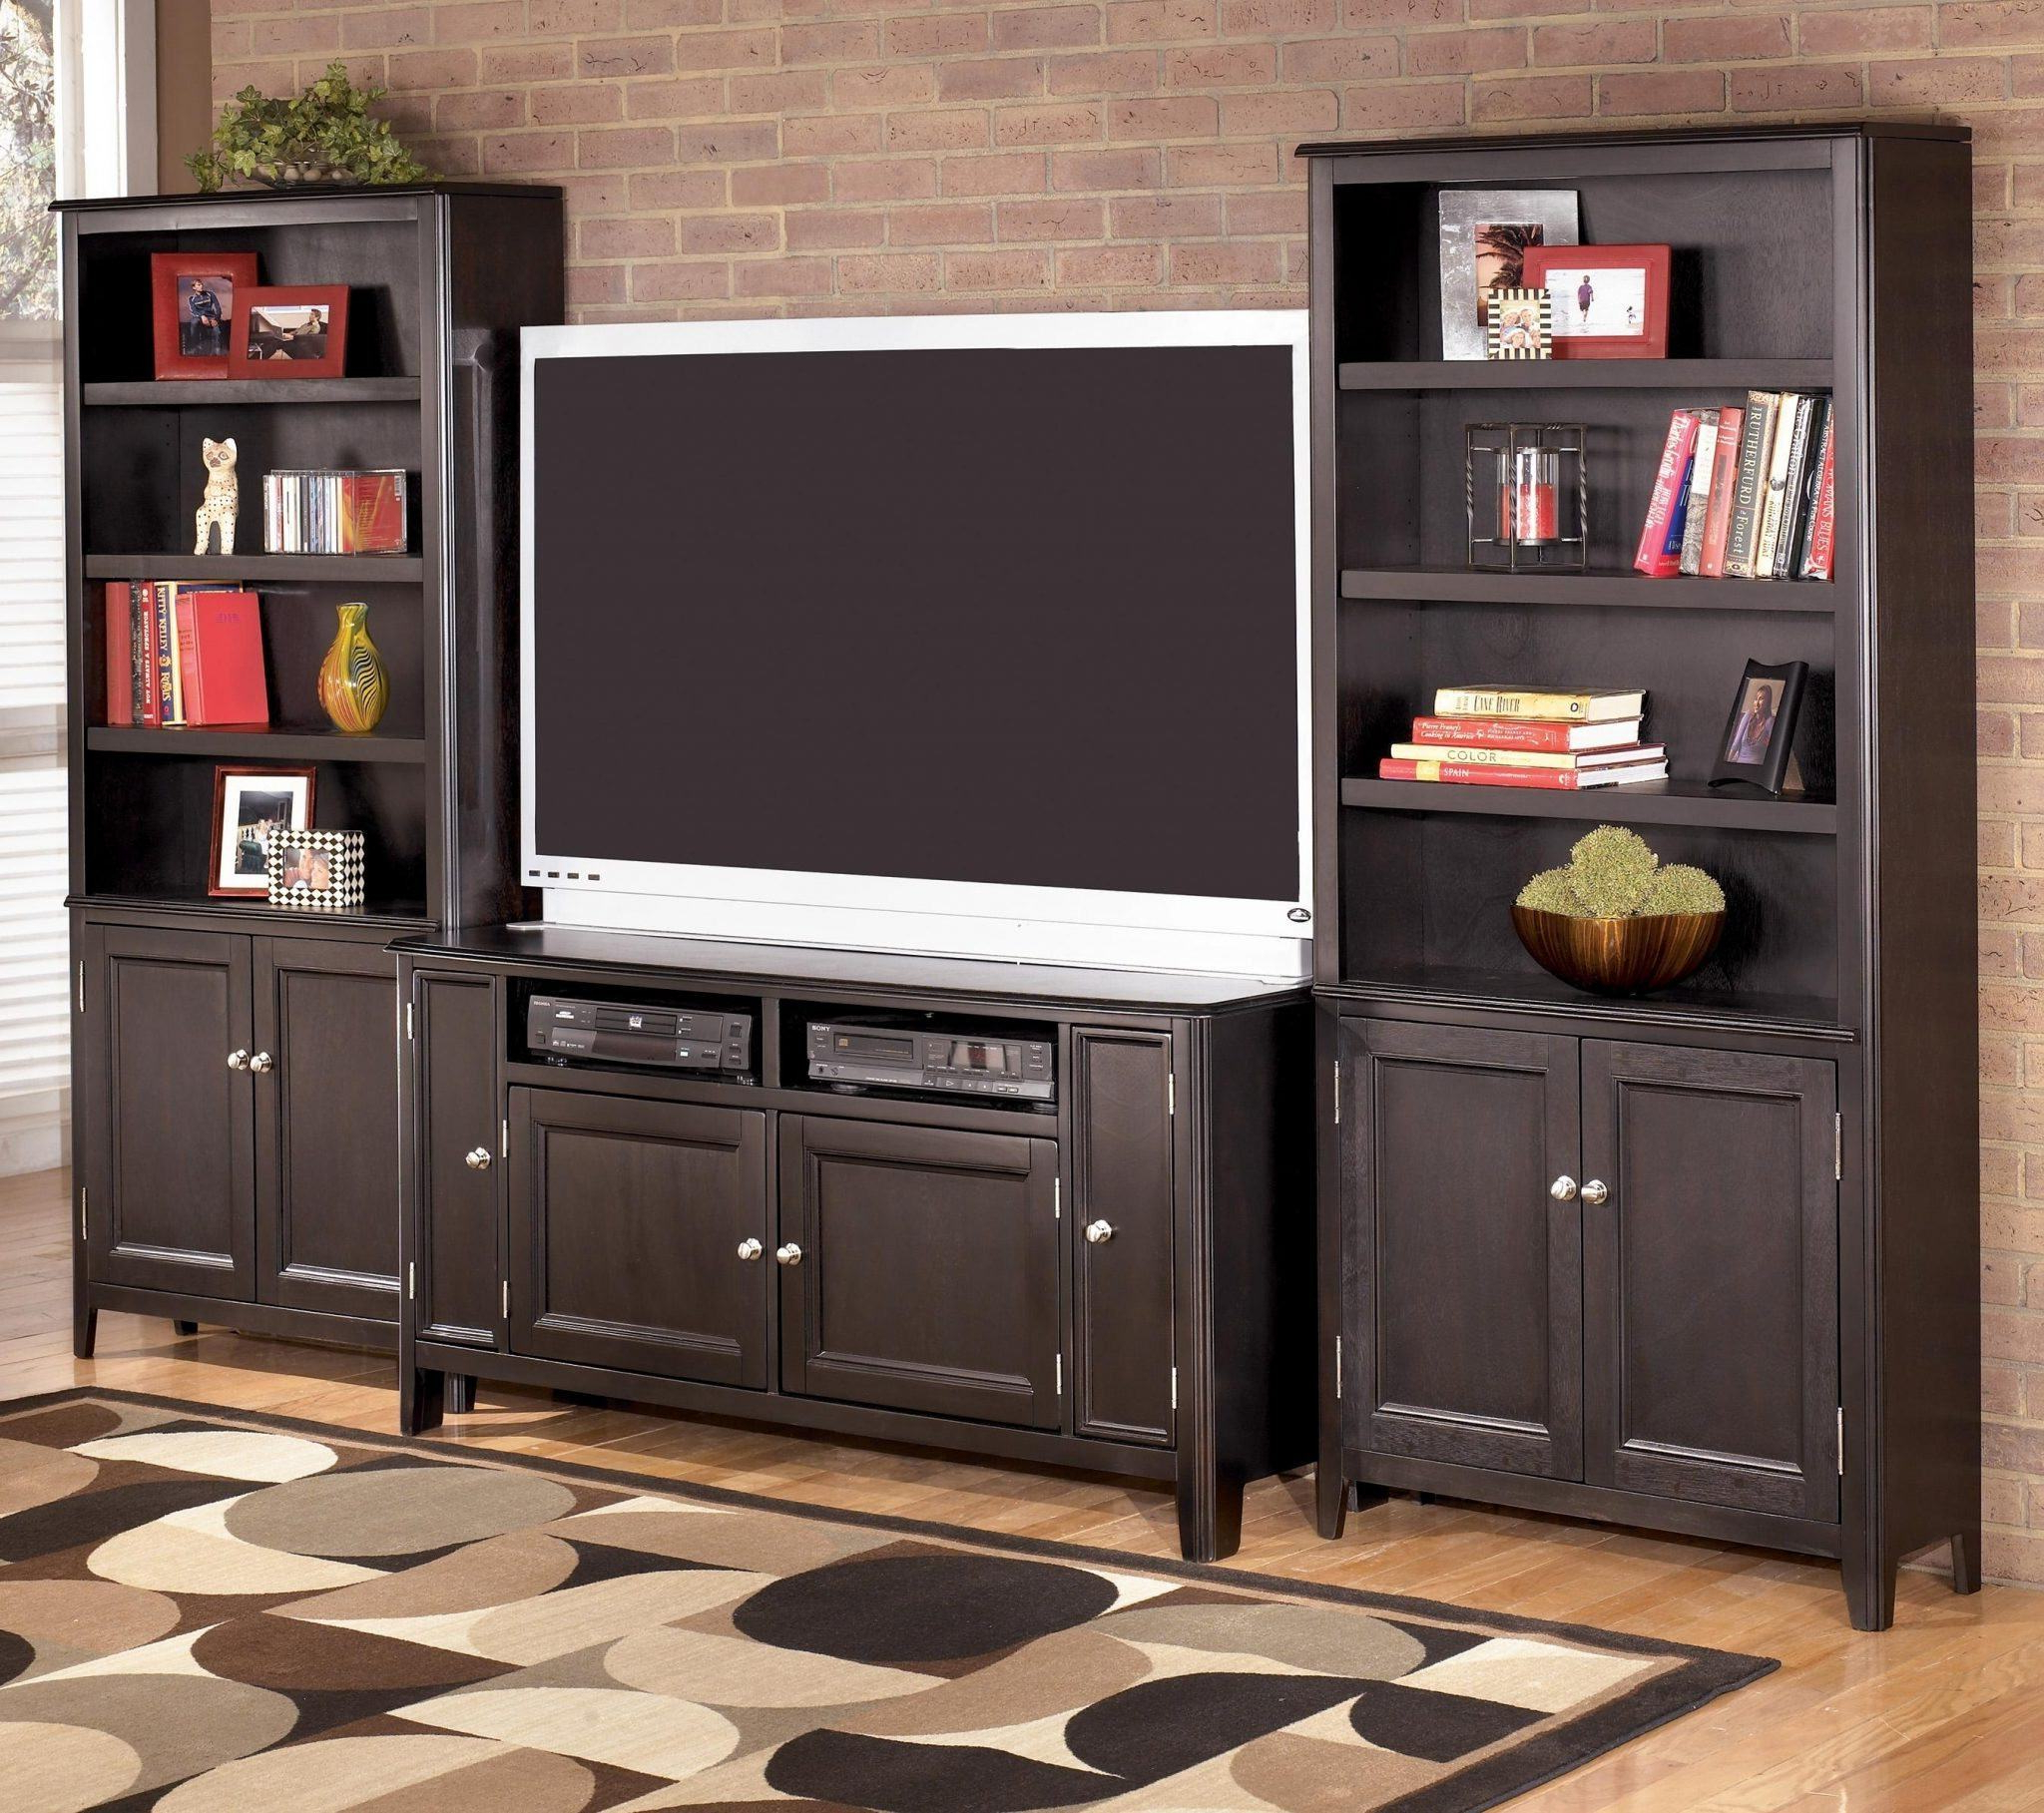 Trendy Tv Stands Bookshelf Combo In 29 Cool Bookcase Tv Stand Combo For Living Room Decor (View 10 of 20)